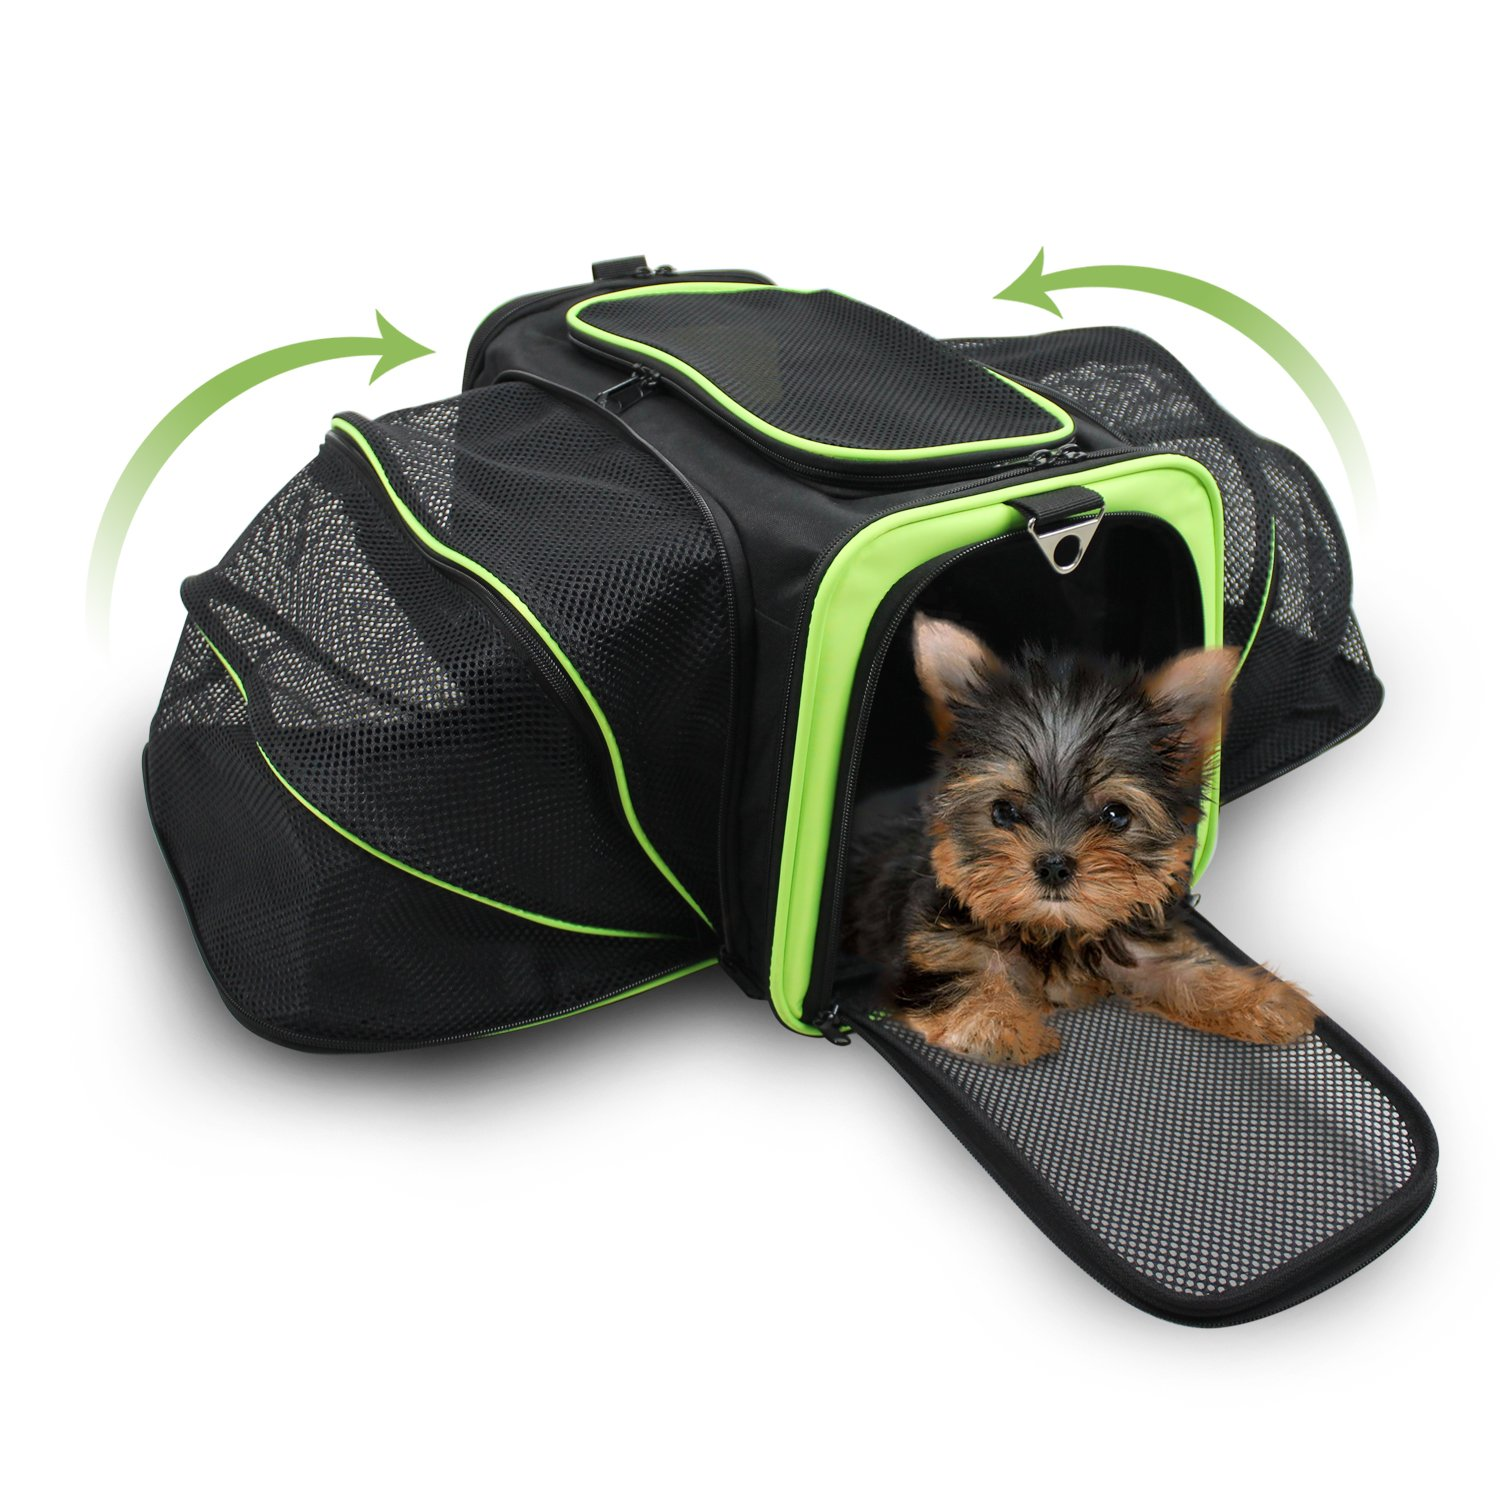 Jespet Expandable Airline Approved Pet Carrier with with Fleece Mat by, Foldable Soft Sided Travel Dog Carrier for Cats Kitten Puppy (16'' L x 9'' W x 9'' H, Black + Neon Green) by Jespet (Image #1)